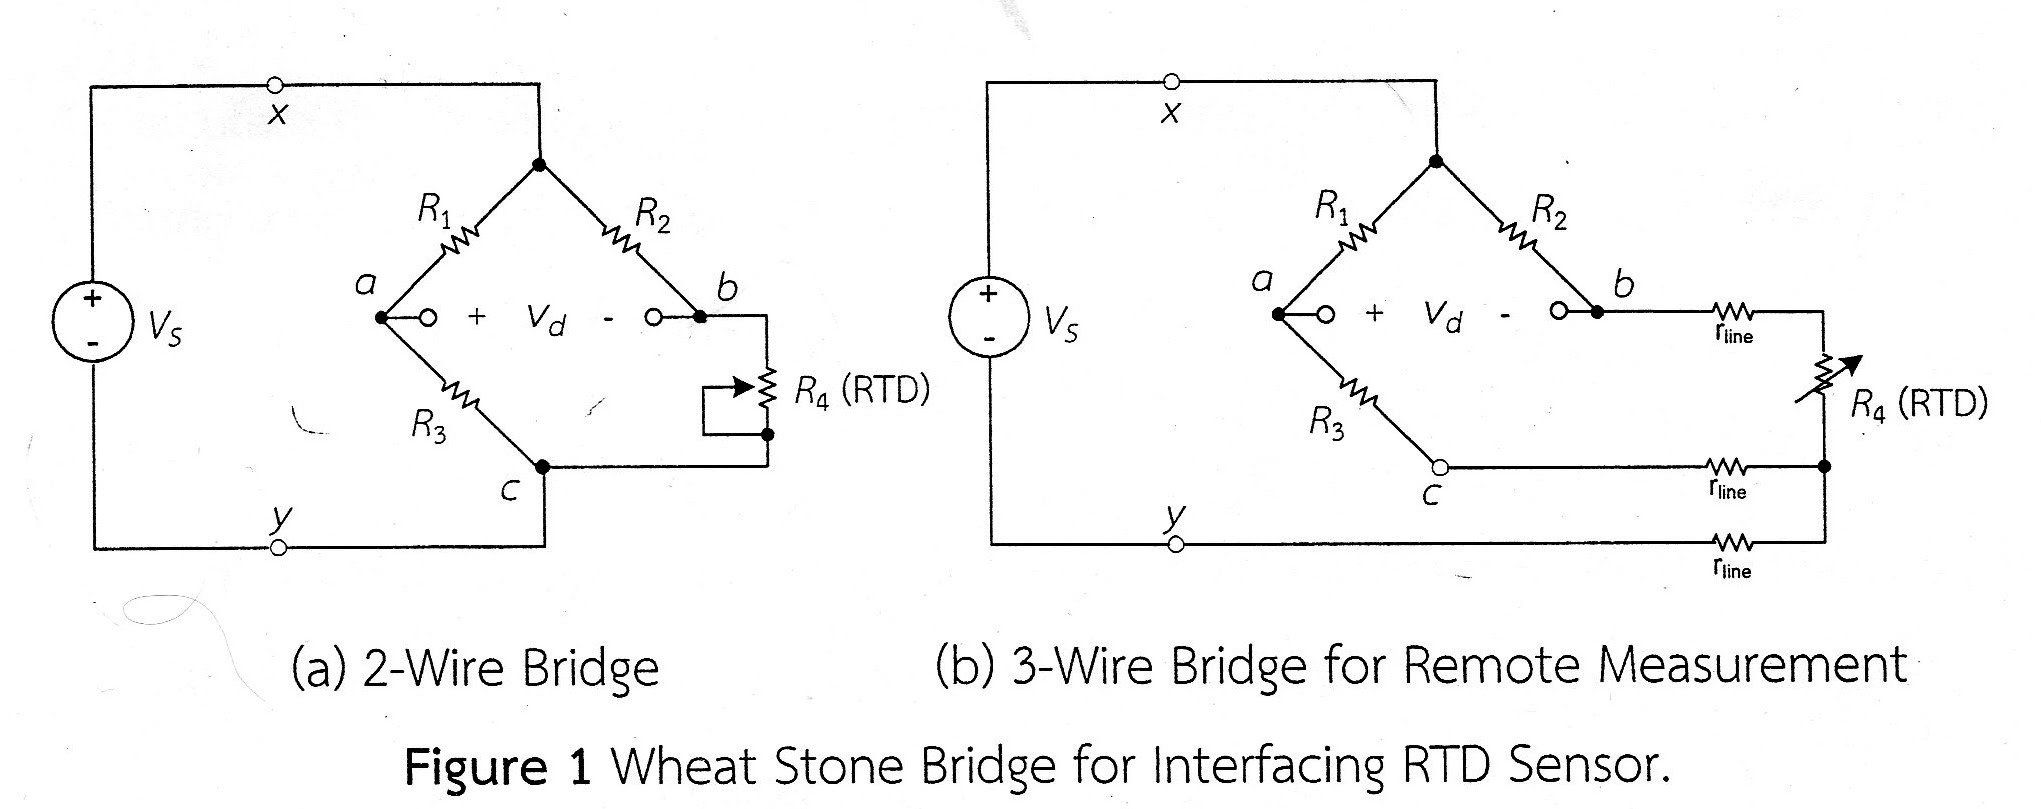 LabIV: Op amp Signal-Conditioning Circuit for 3-Wire RTD Bridge -  kmitl58010911